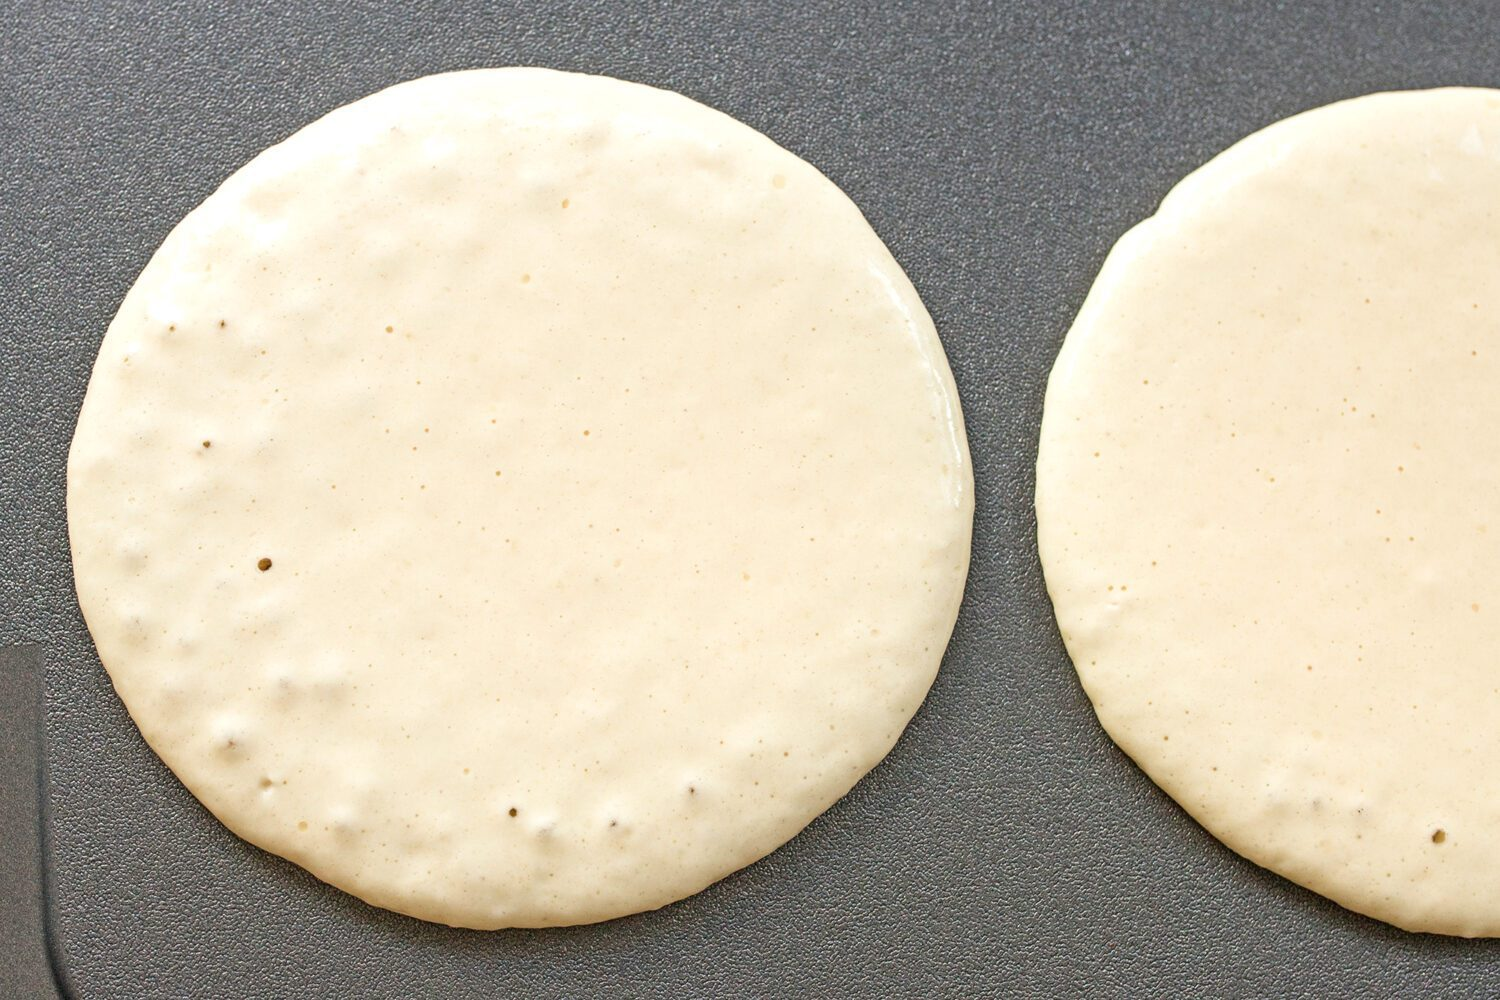 cooking pancakes on a griddle